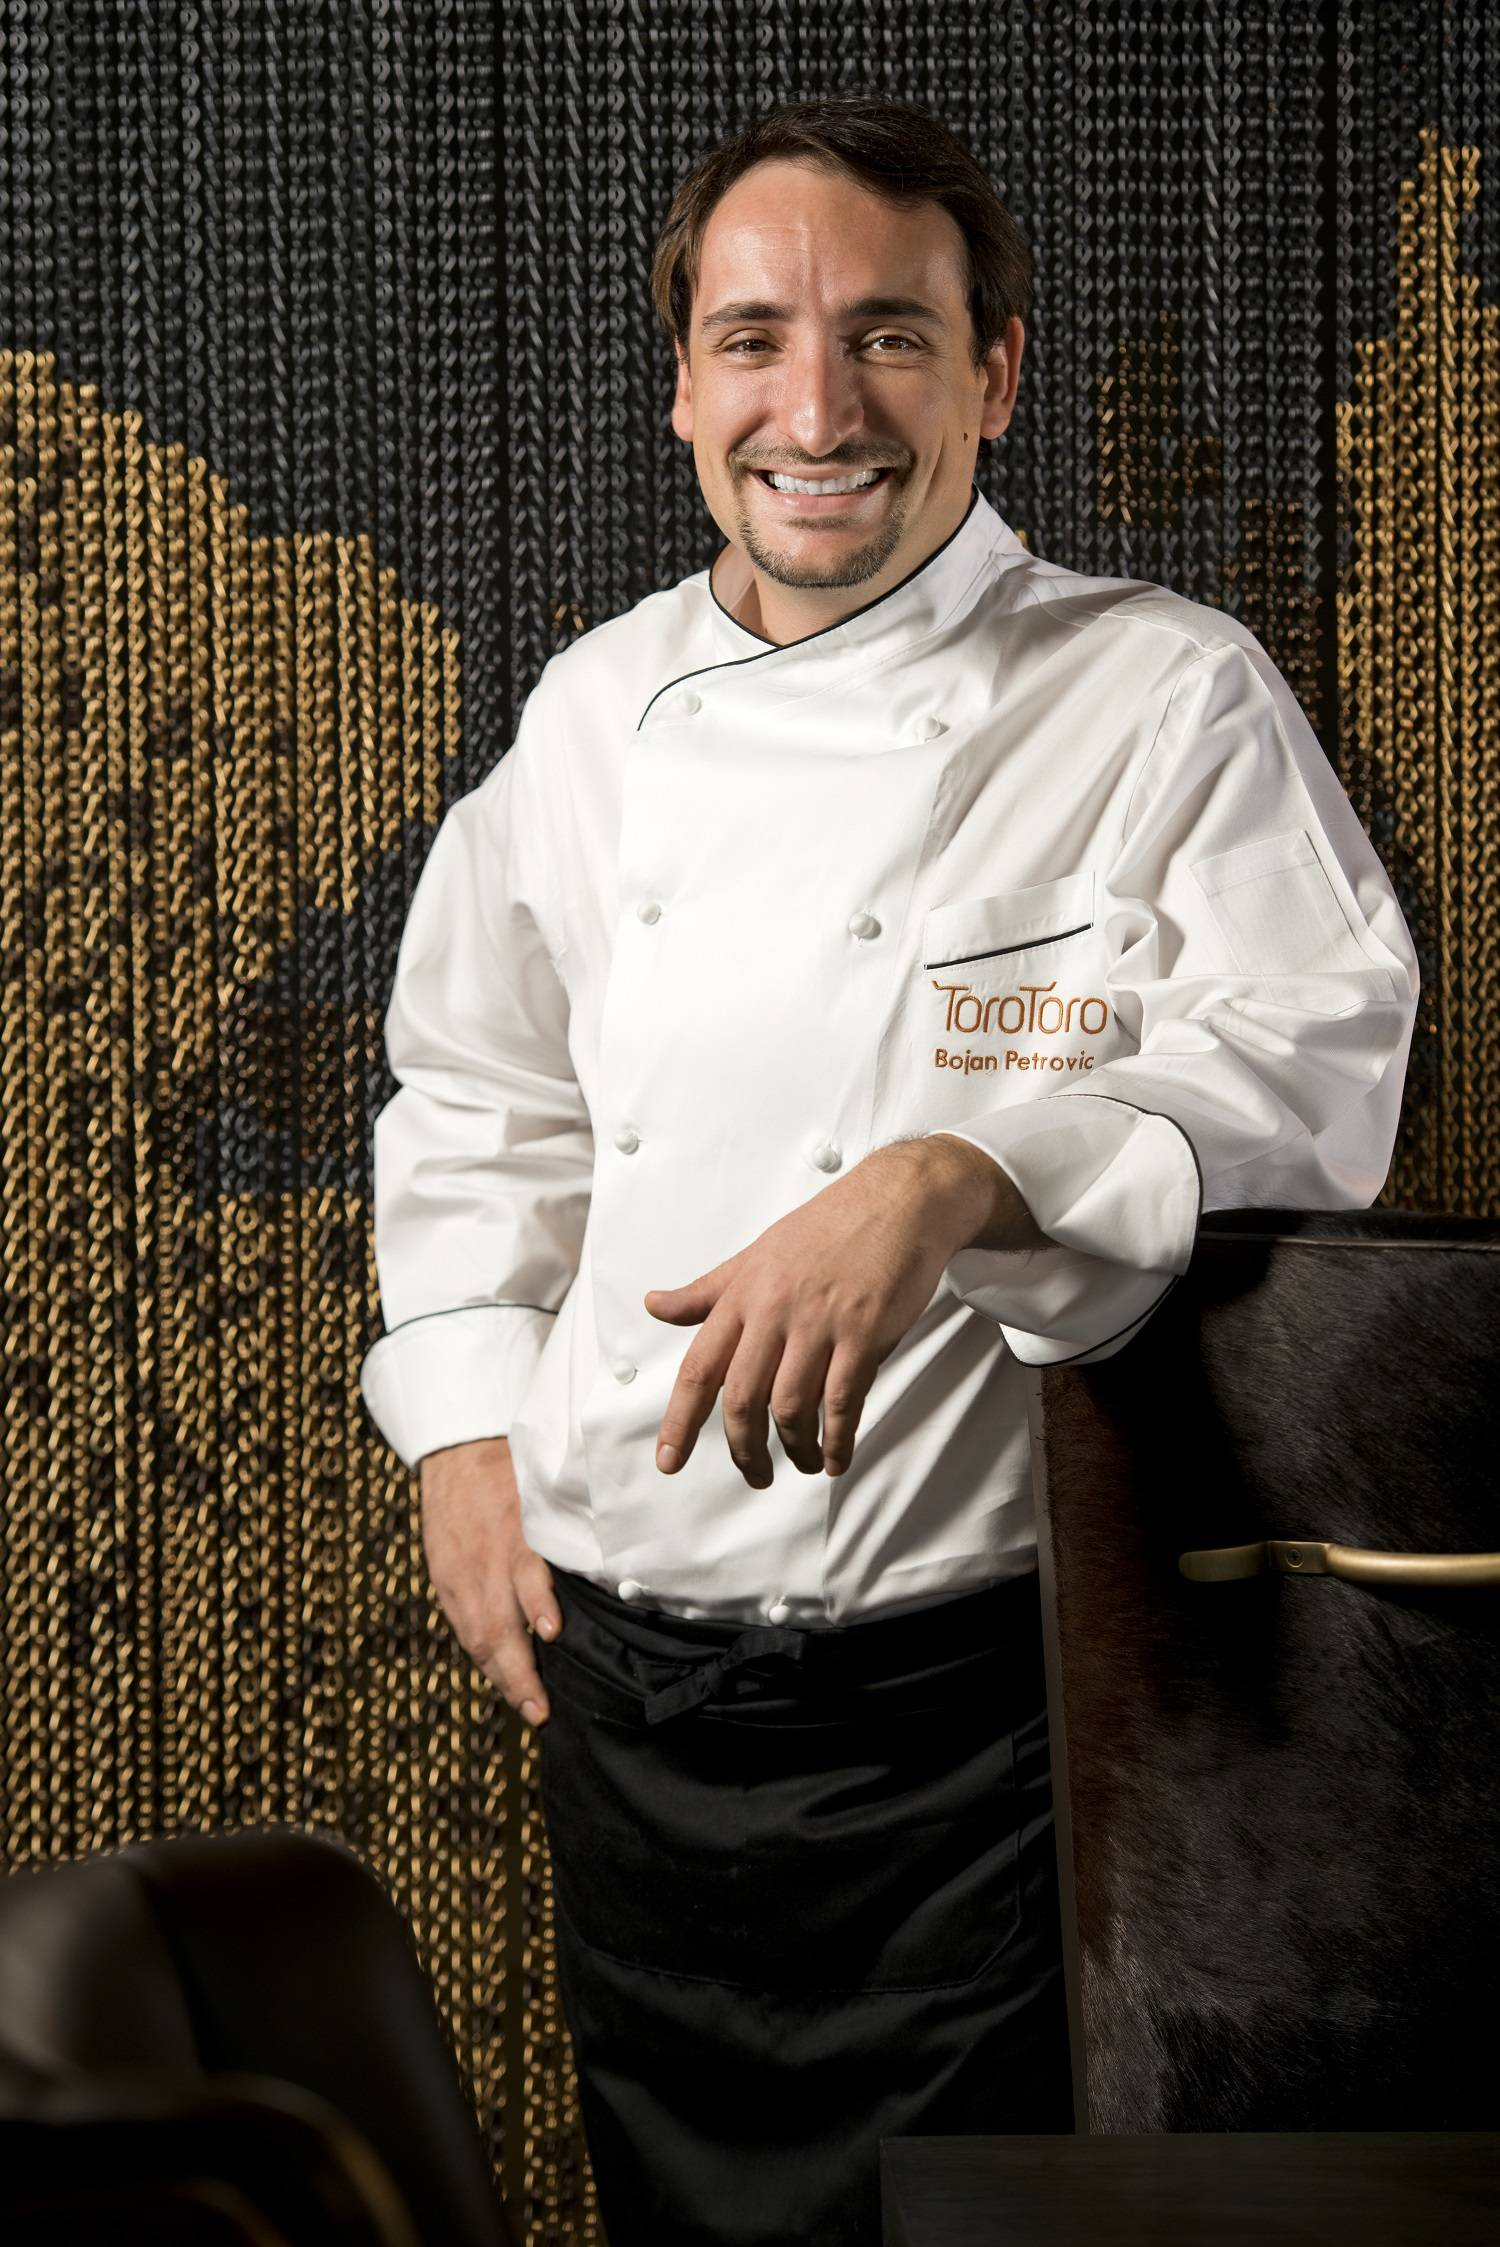 Bojan Petrovic, Executive Chef, Toro Toro copy